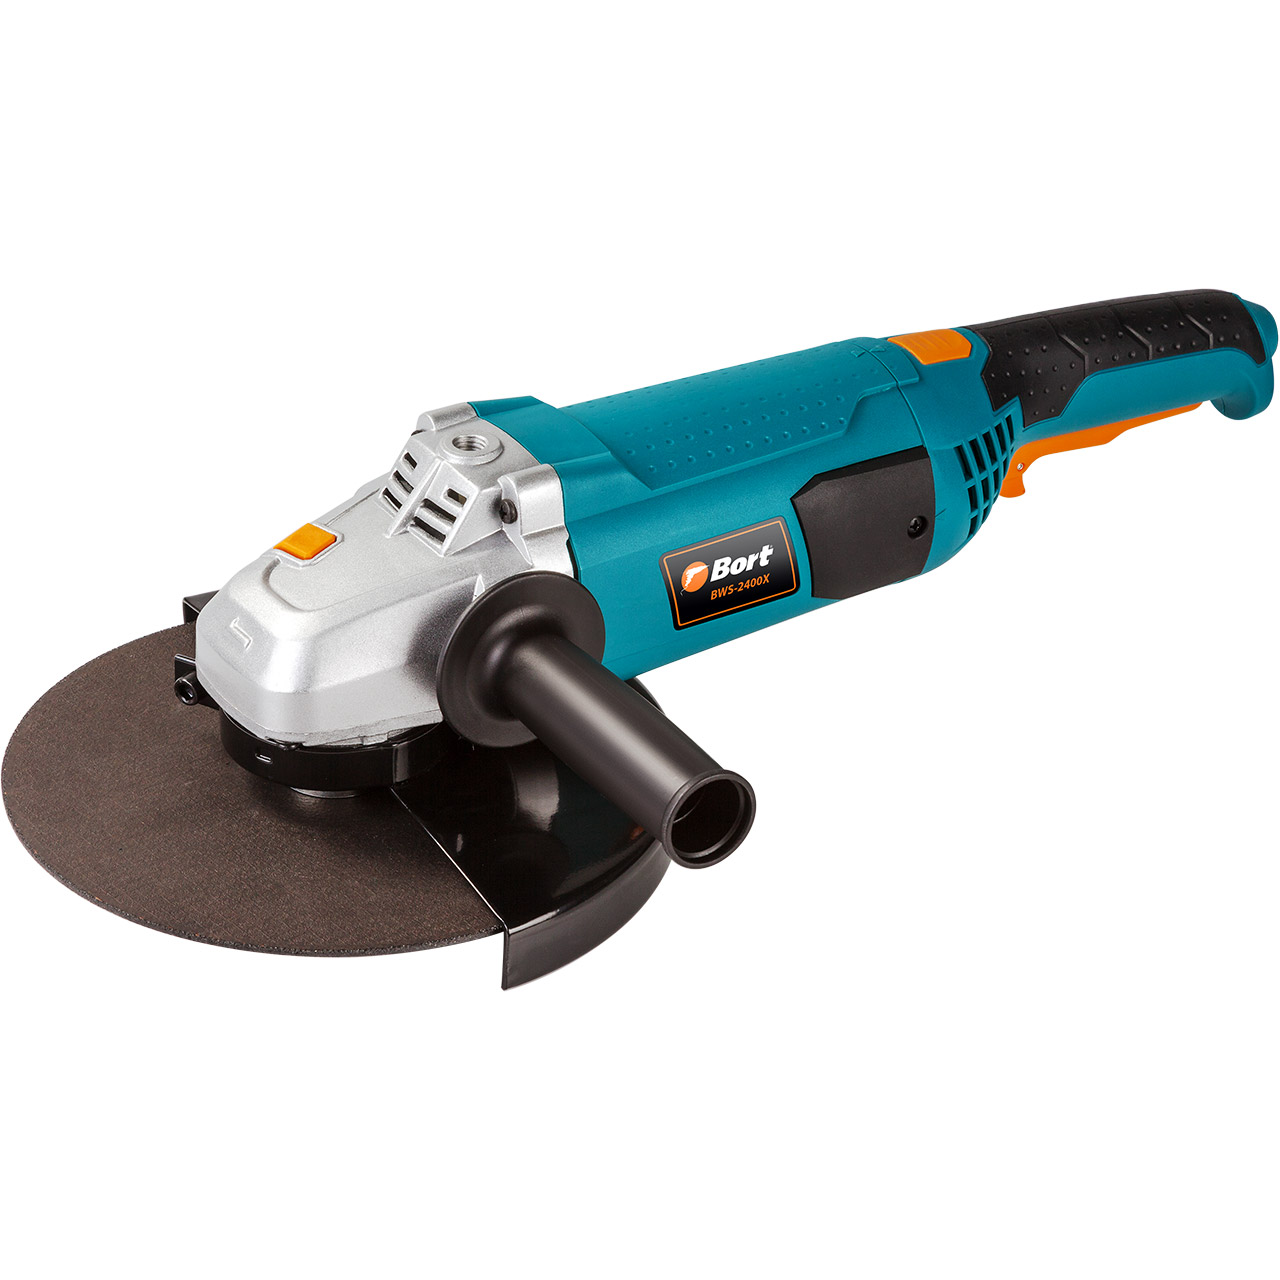 BORT Angle Grinder bulgarian USHM Grinding machine Electric grinder Angle Grinder grinding Power or cutting metal portable Woods Steel Power Tool Warranty BWS-2400X цена и фото